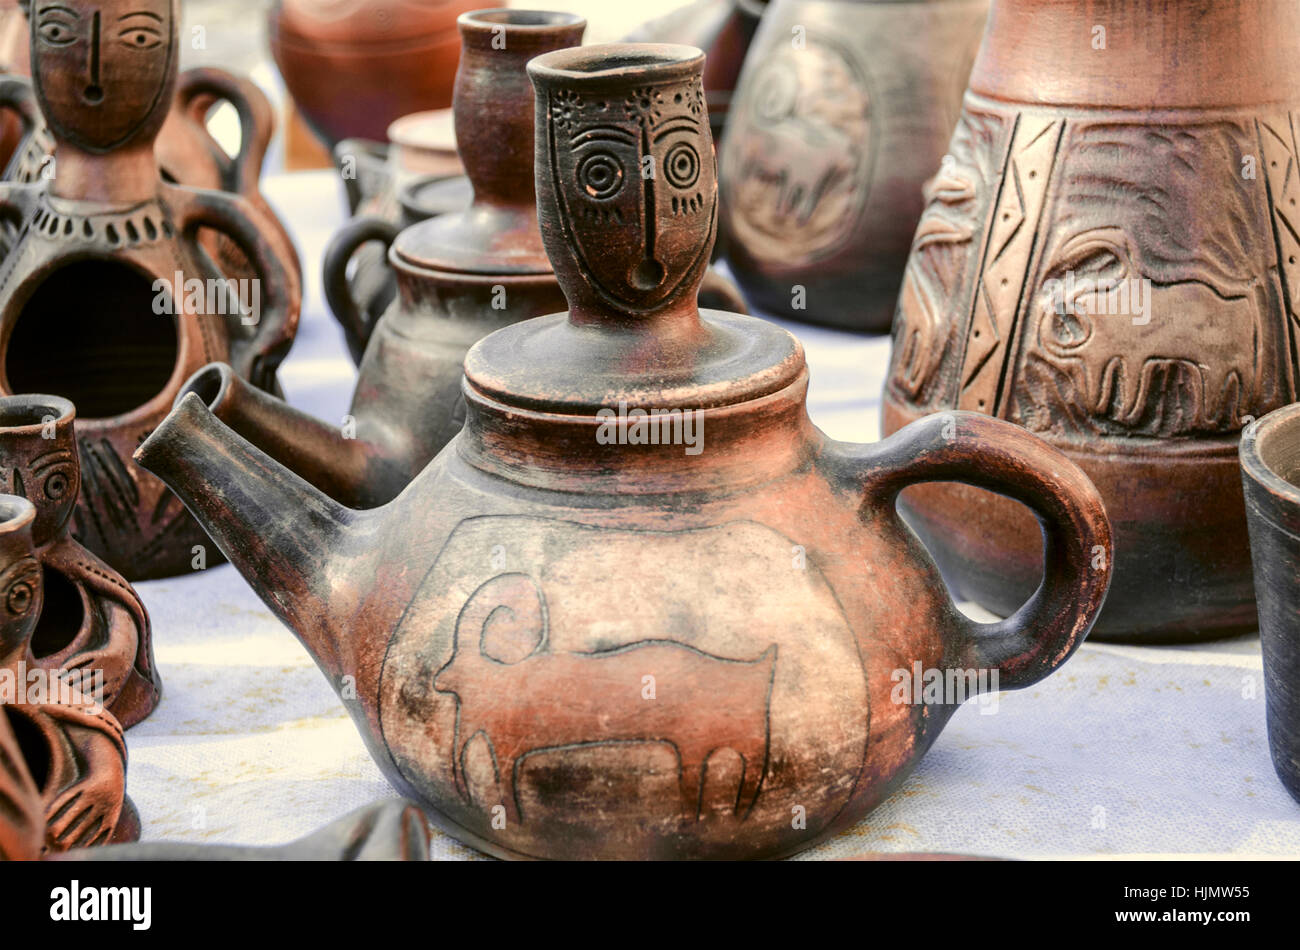 Souvenirs of clay teapots with relief ornament - Stock Image